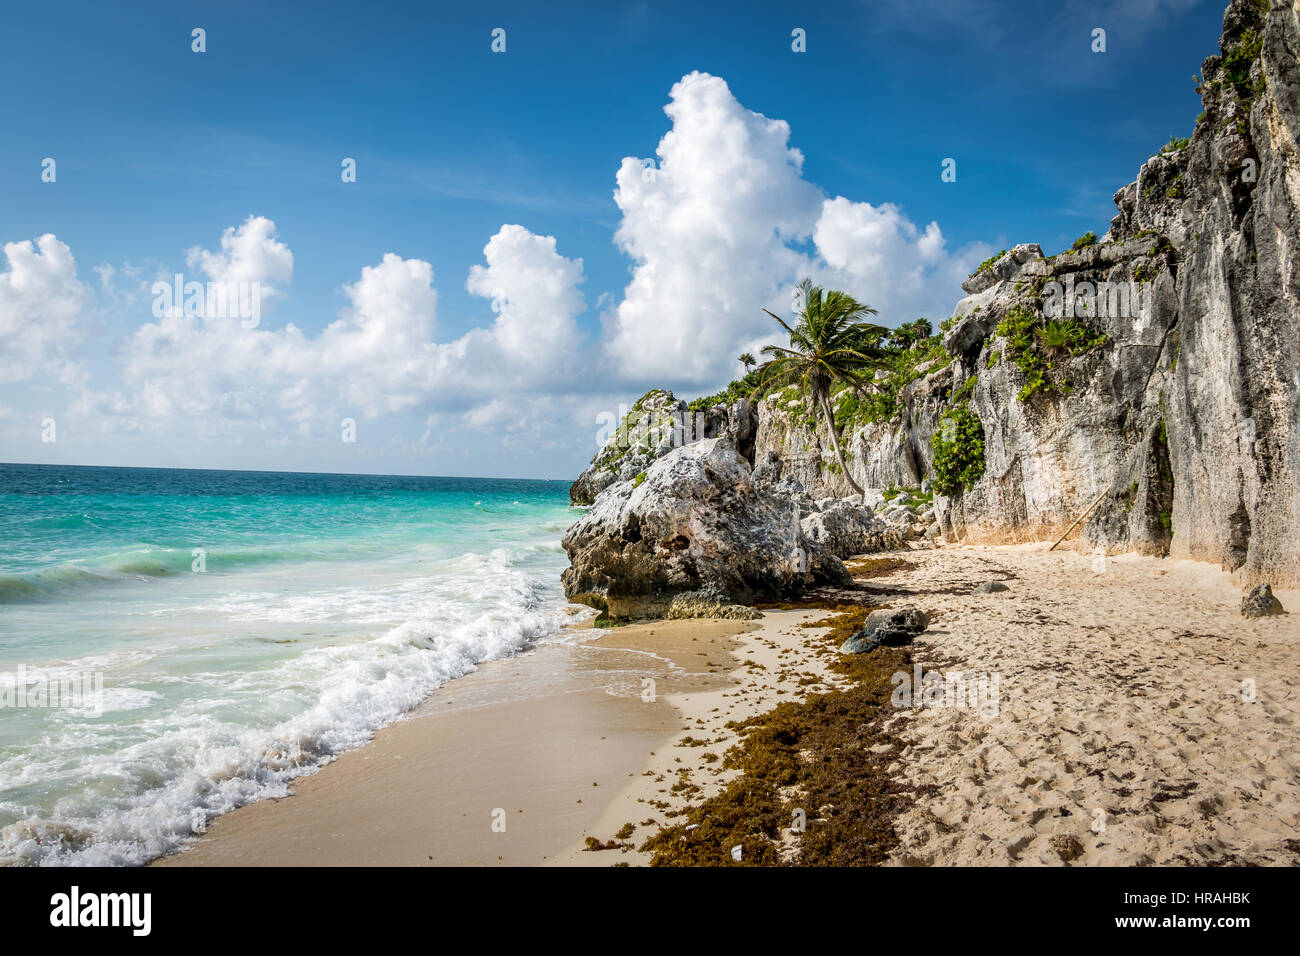 Caribbean sea and Rocks - Mayan Ruins of Tulum, Mexico - Stock Image